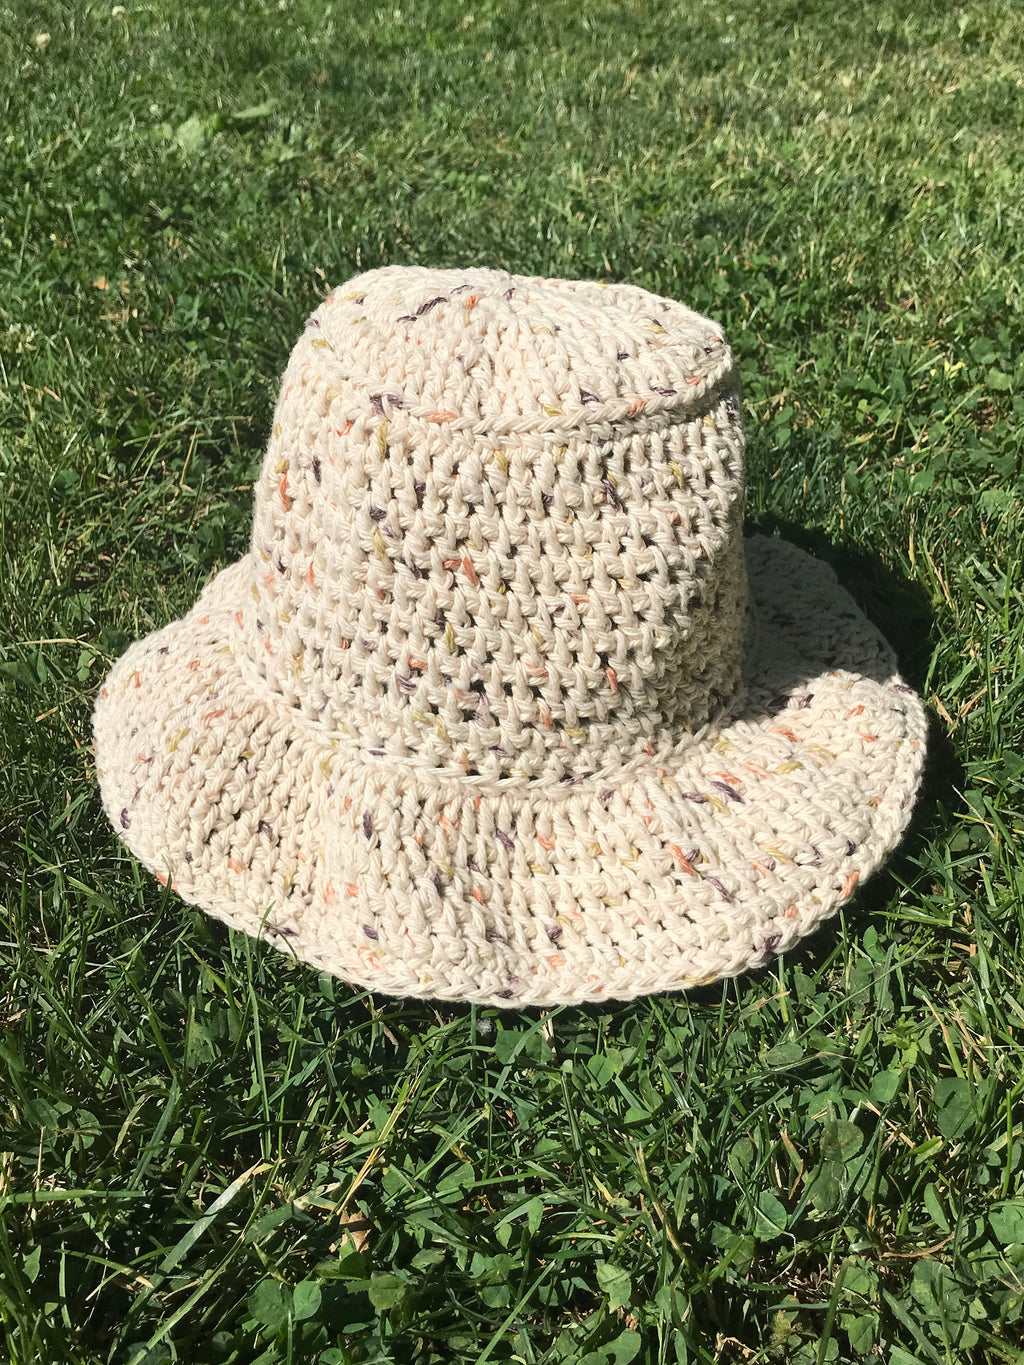 handmade crochet bucket hat in natural beige tan khaki unbleached undyed cotton fleck pattern100% cotton yarn wavy ruffle brim spring summer hat etsy depop pintrest urban outfitters zara aesthetic trend 90s y2k buy for sale cost ideas measurements size material dimensions designs hand crocheted womens adult adults size